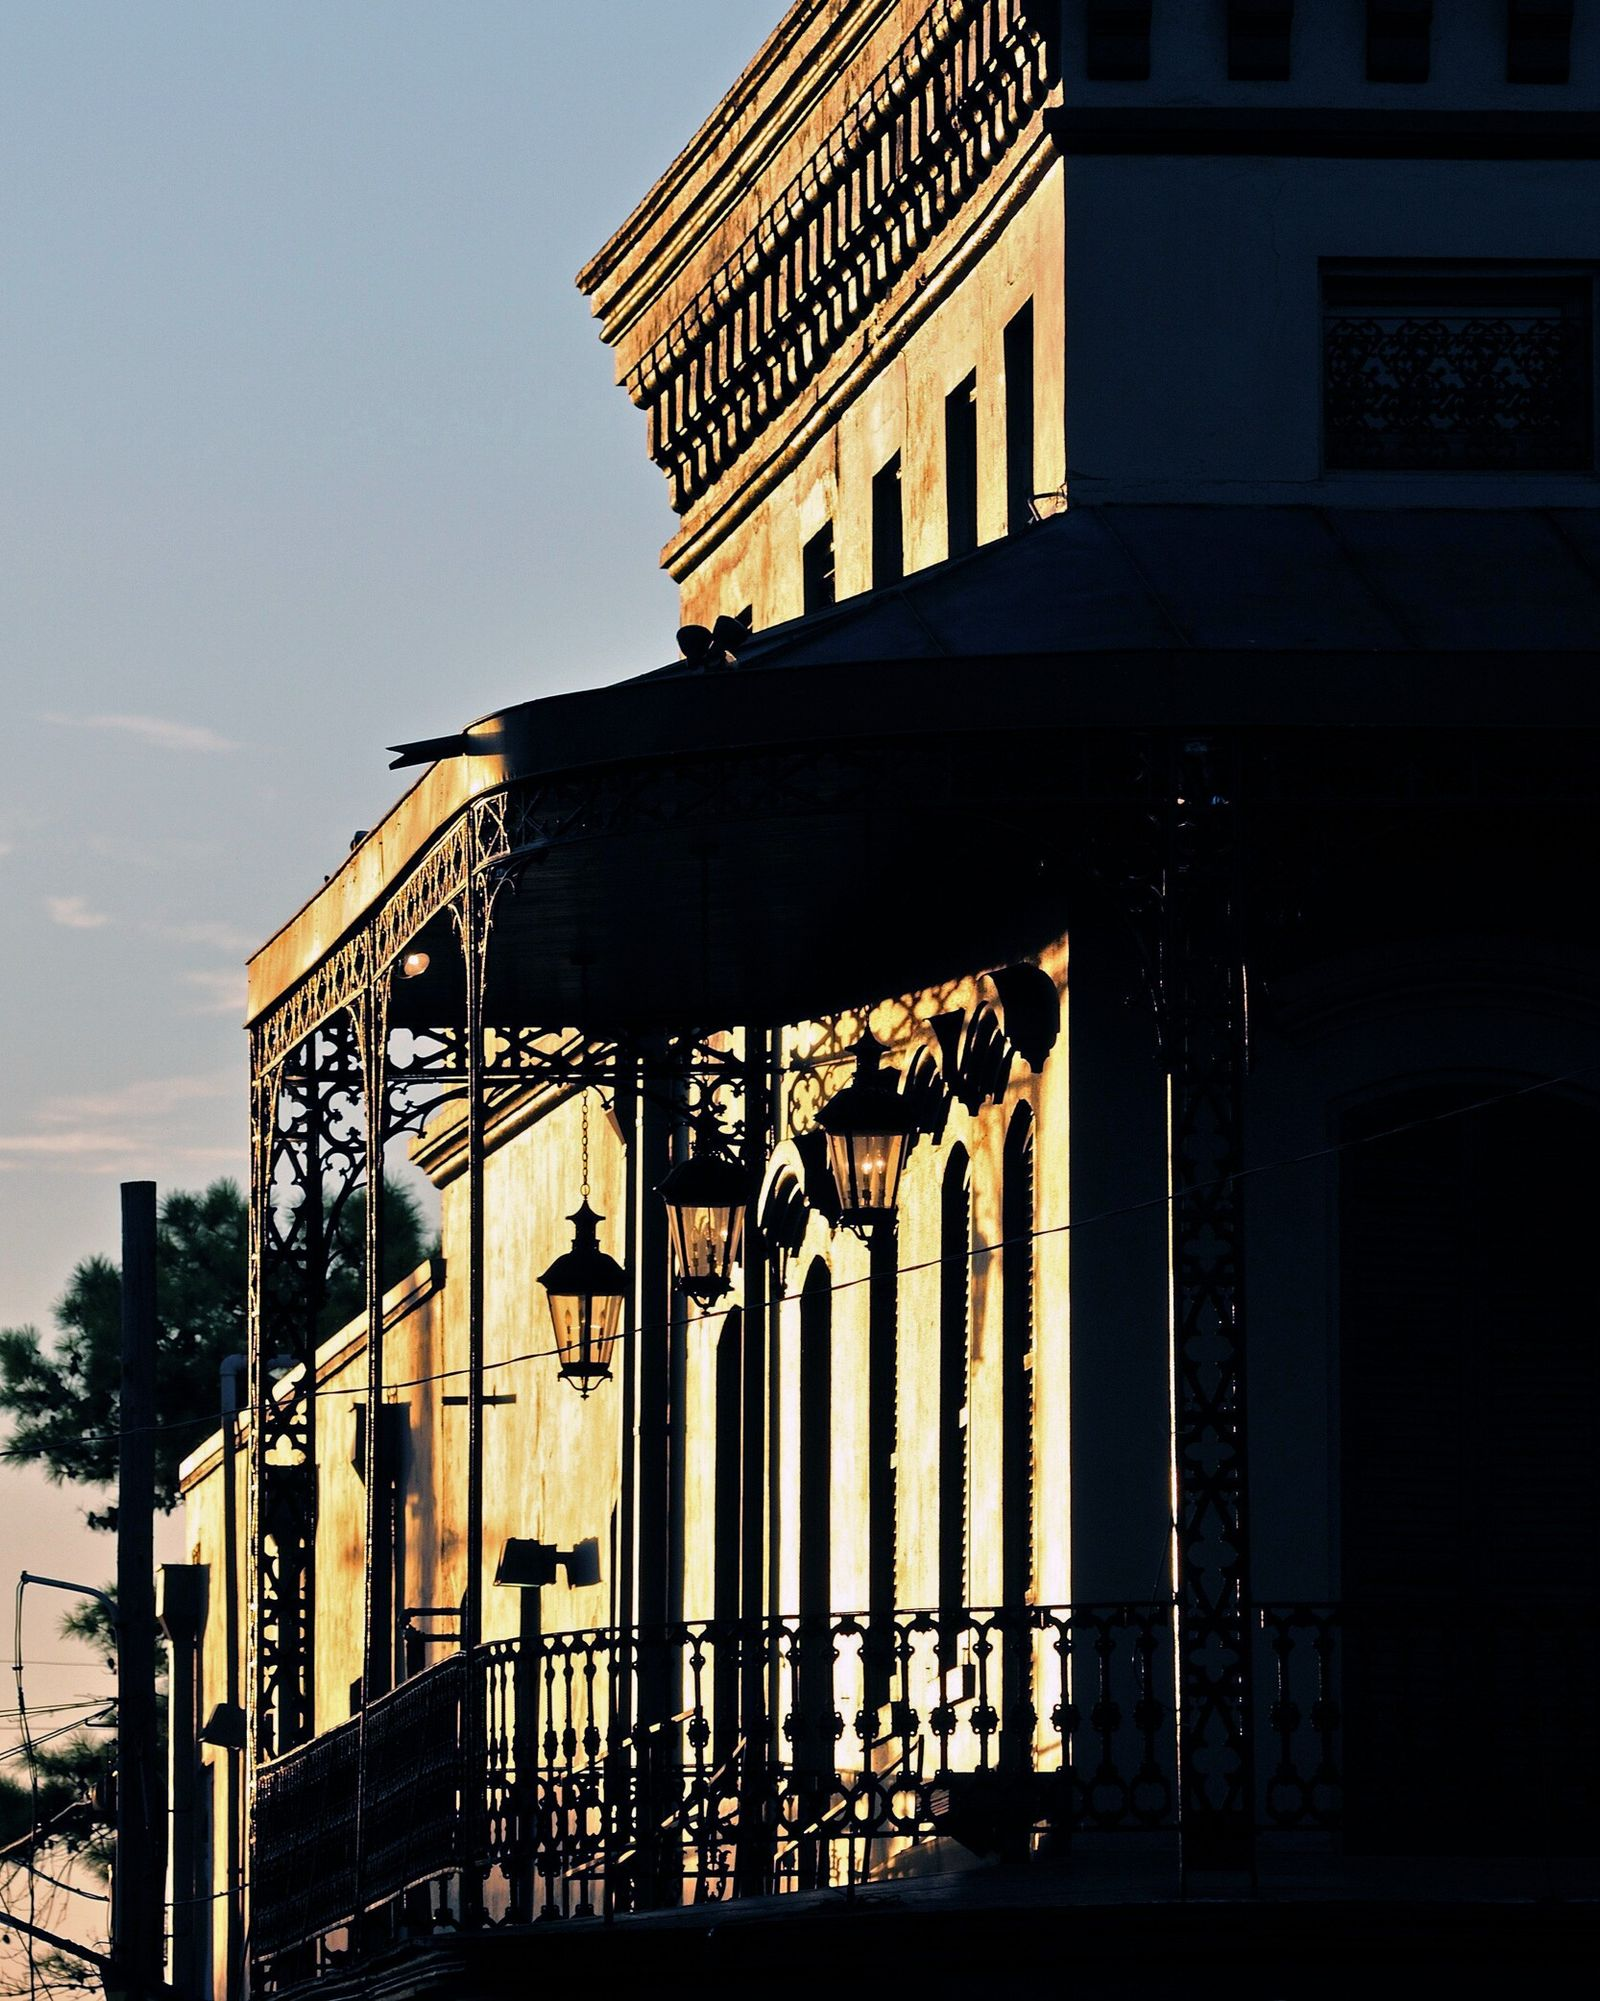 In New Orleans, historic dwellings such as Creole cottages, double shotgun houses, and townhomes often have ...